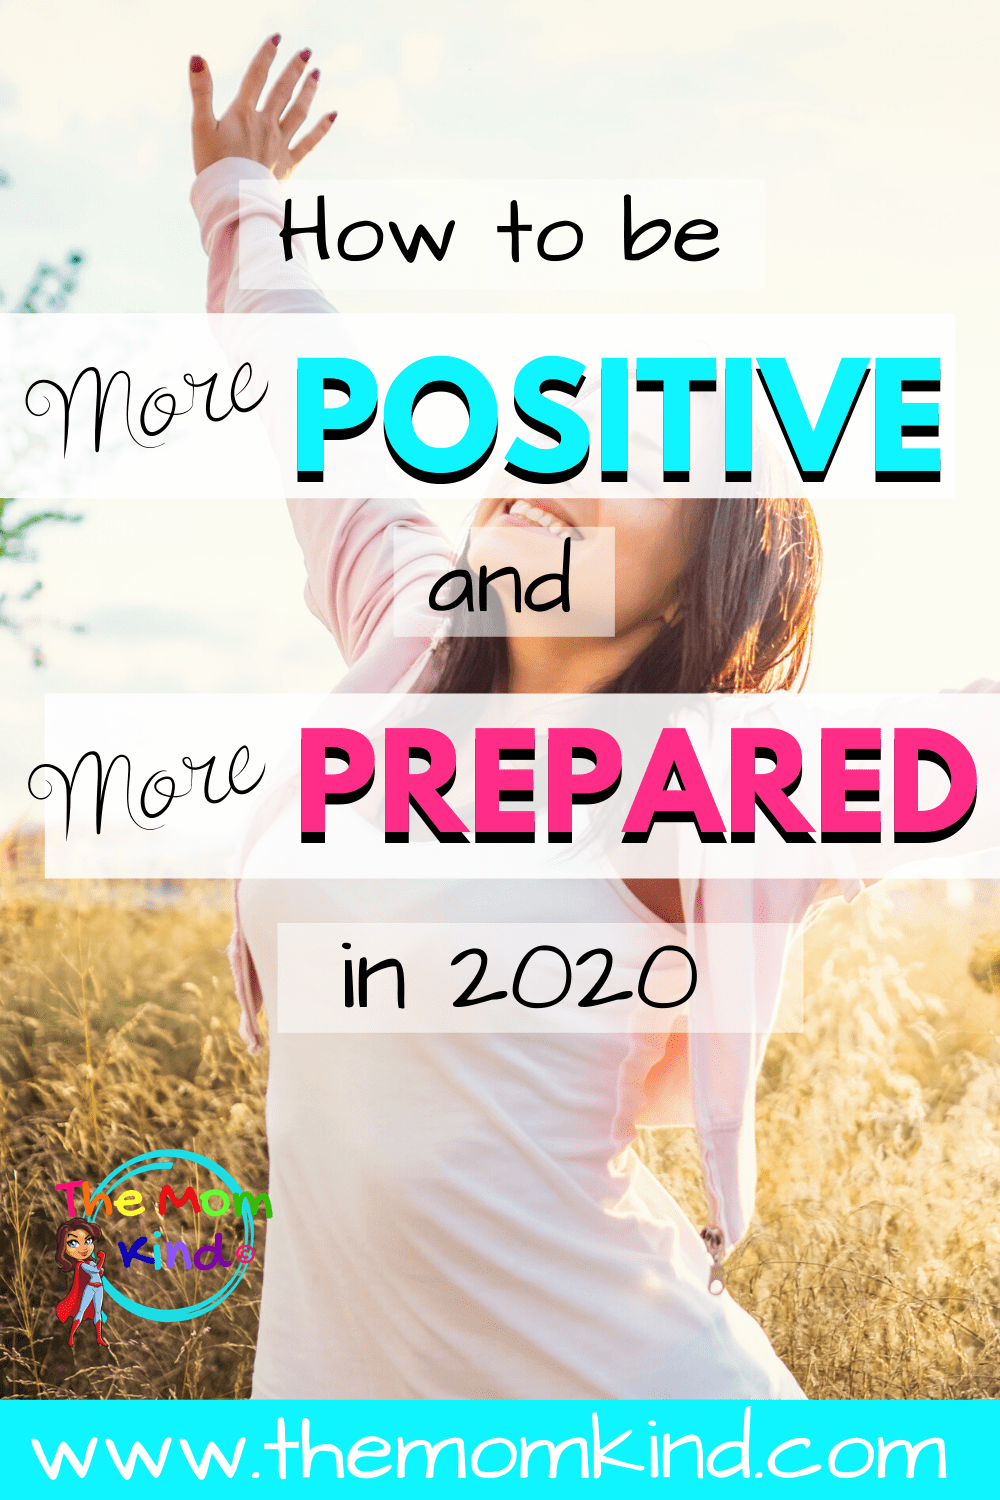 If you're ready to make a change and start feeling rejuvenated and organized, here are five ways to go into 2020 more positive and prepared. #selfcare #selflove #positive #mentalhealth